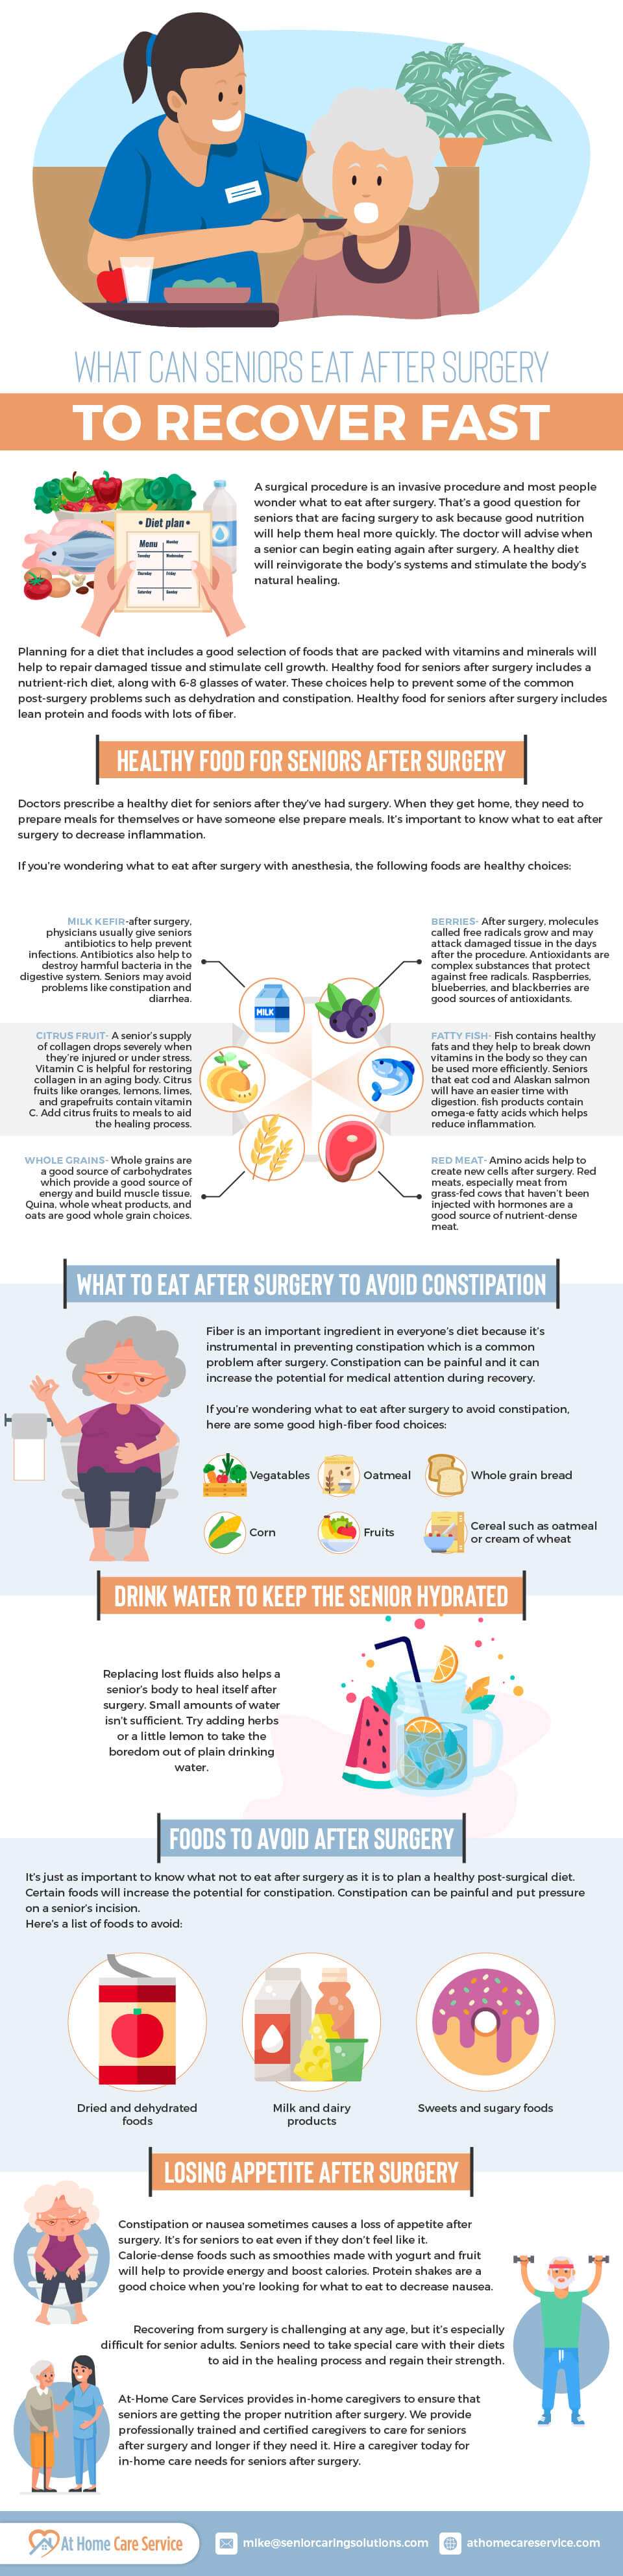 What Can Seniors Eat After Surgery